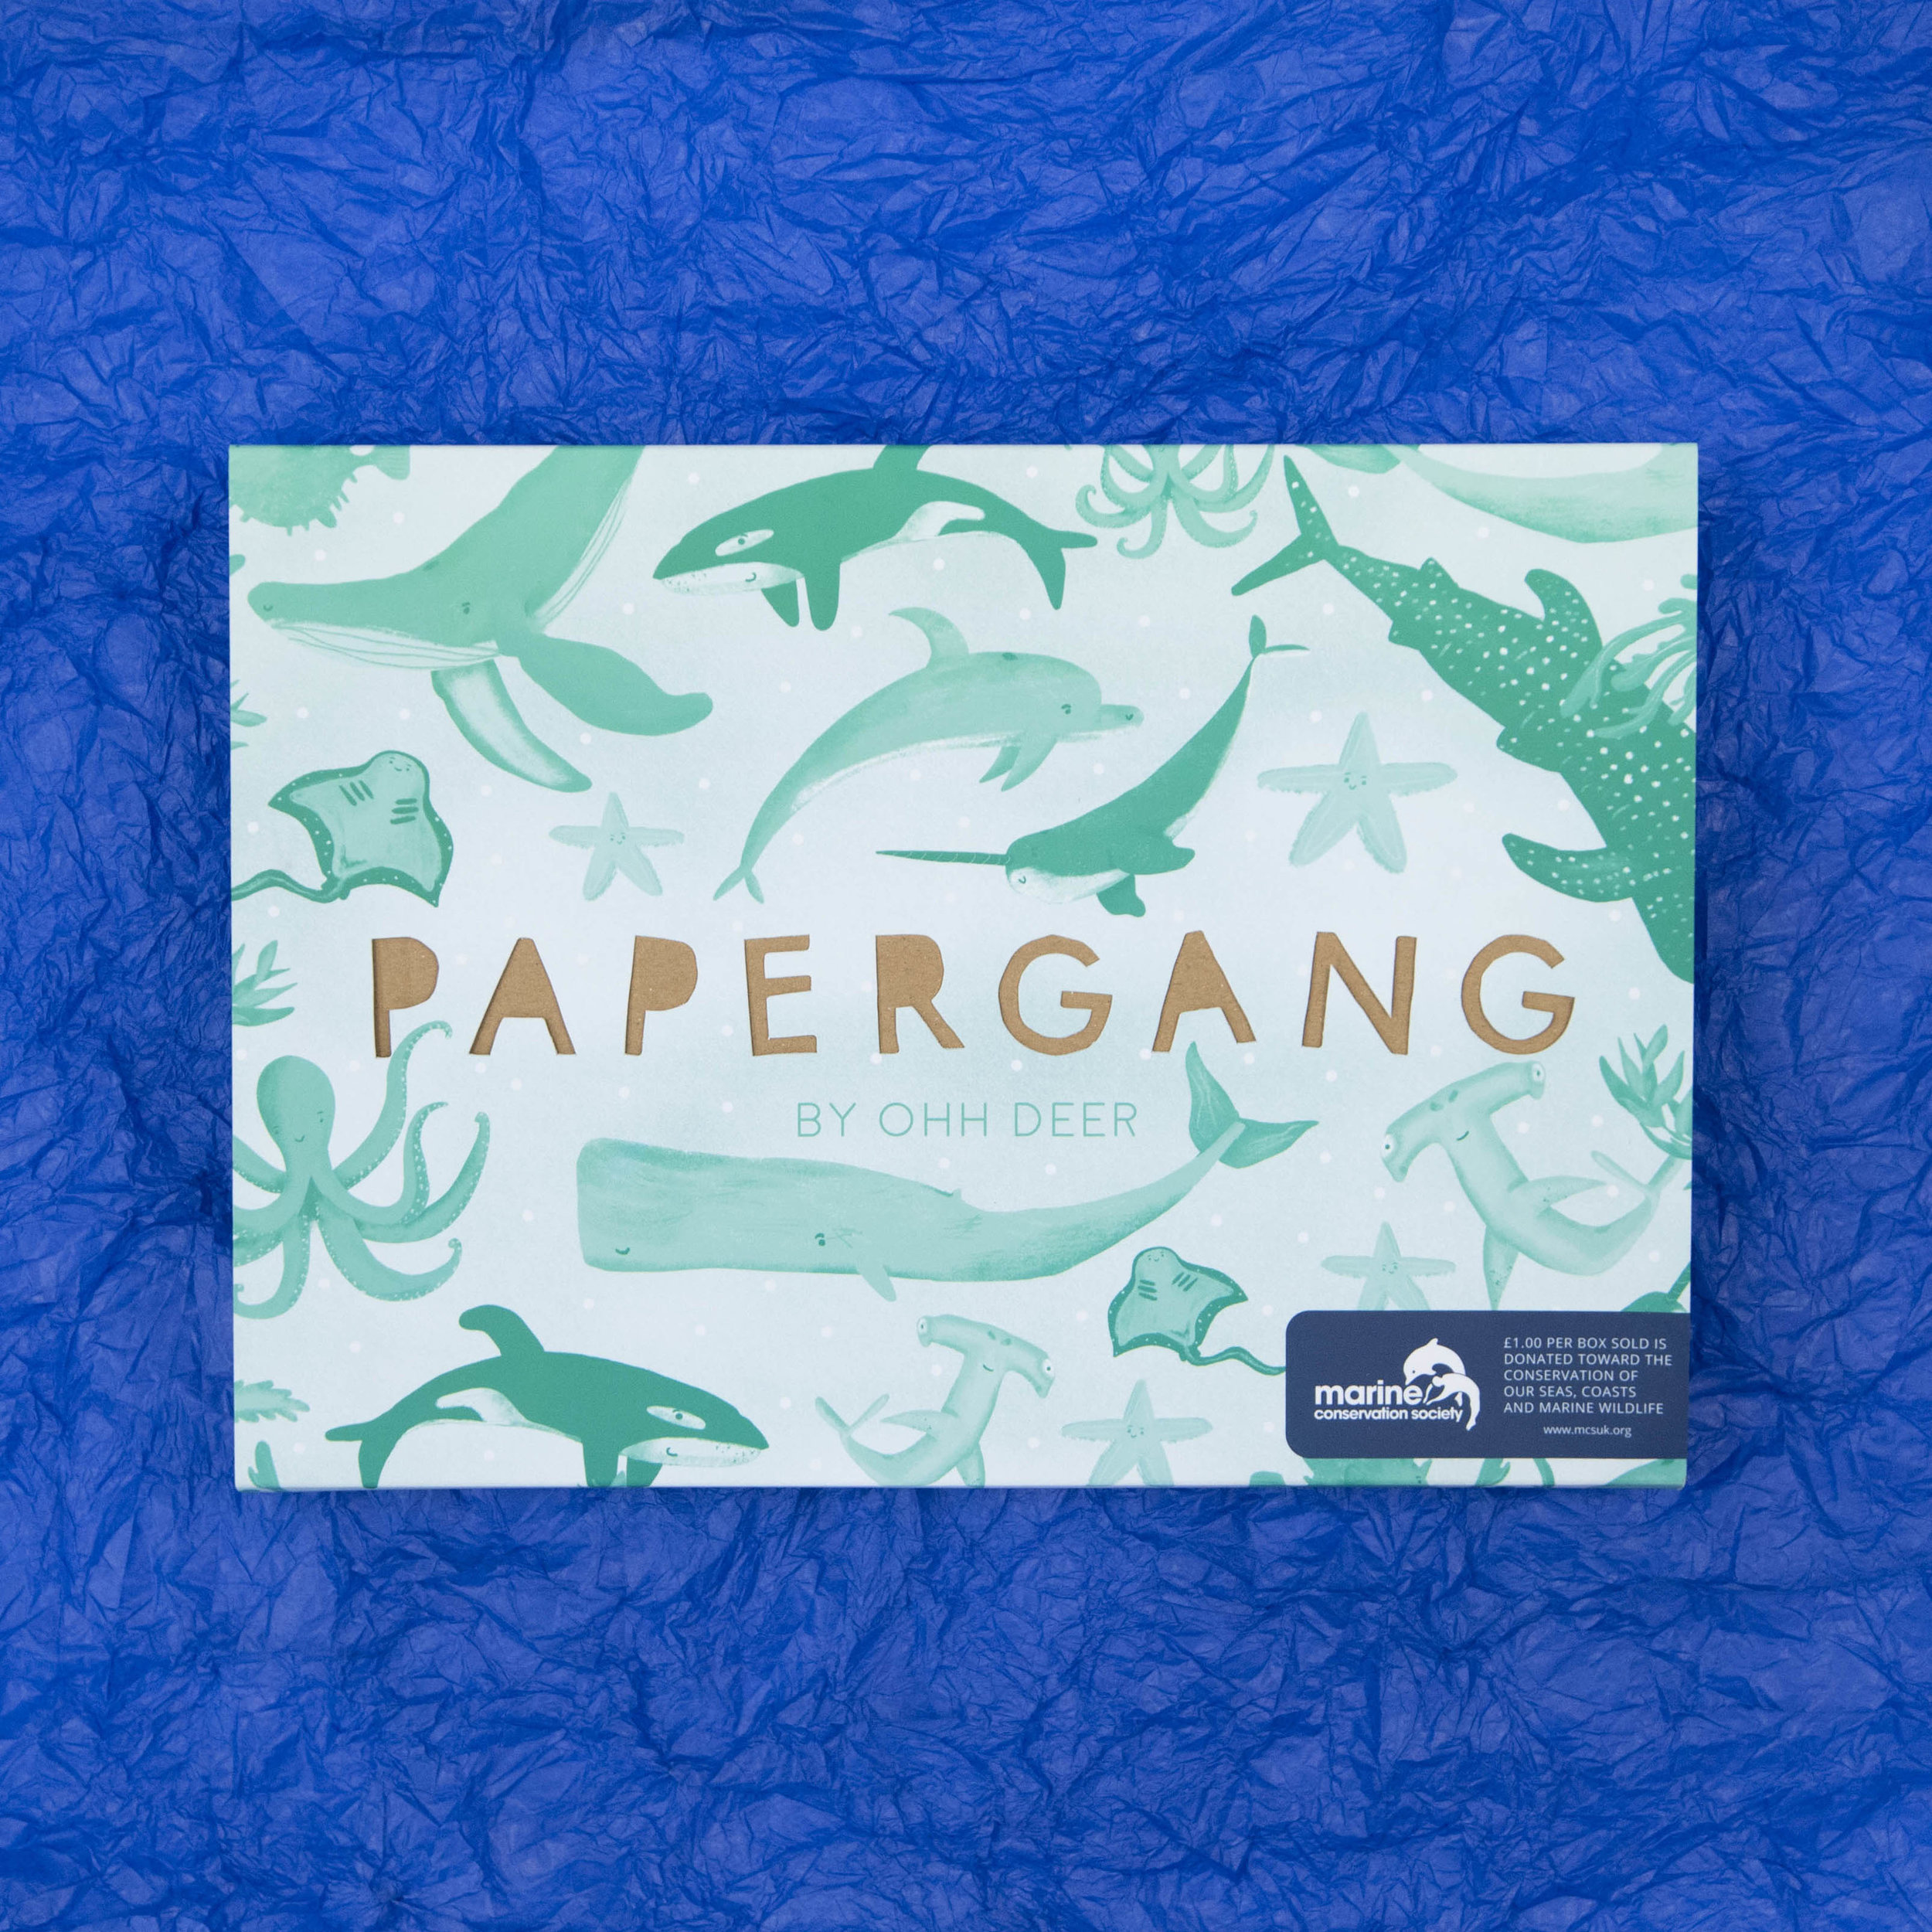 Papergang_box_June.jpg